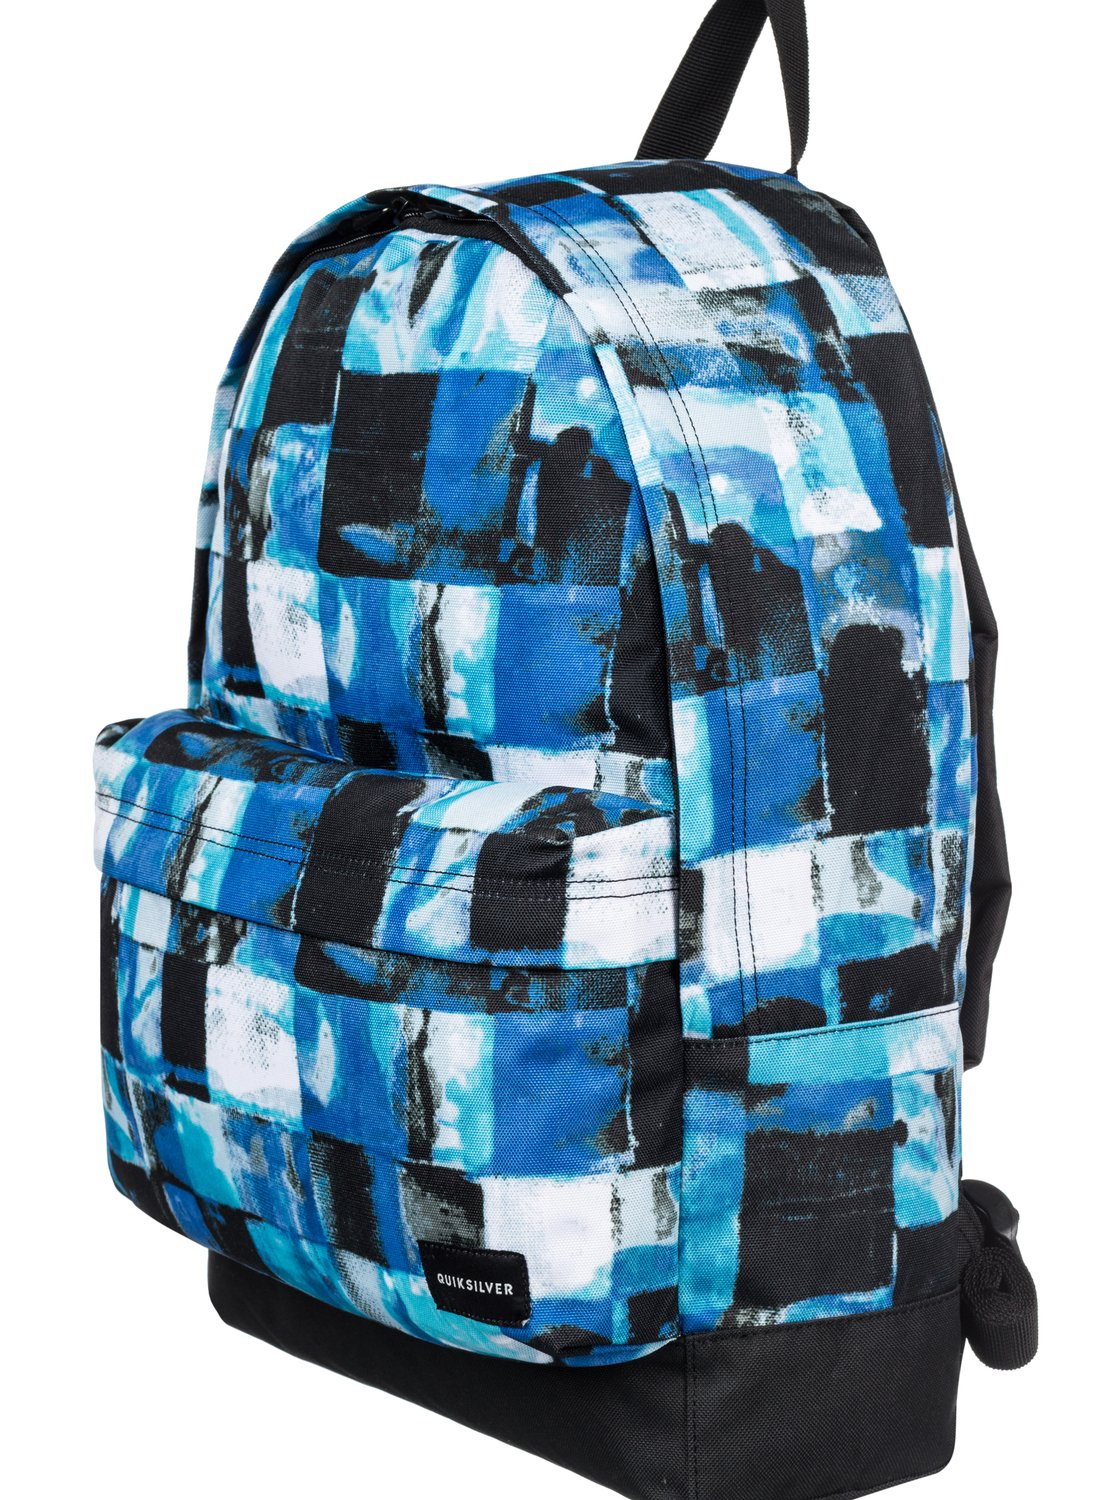 Sac à dos Quiksilver Everyday Poster Turkish Sea Resin Check bleu 5TeYen